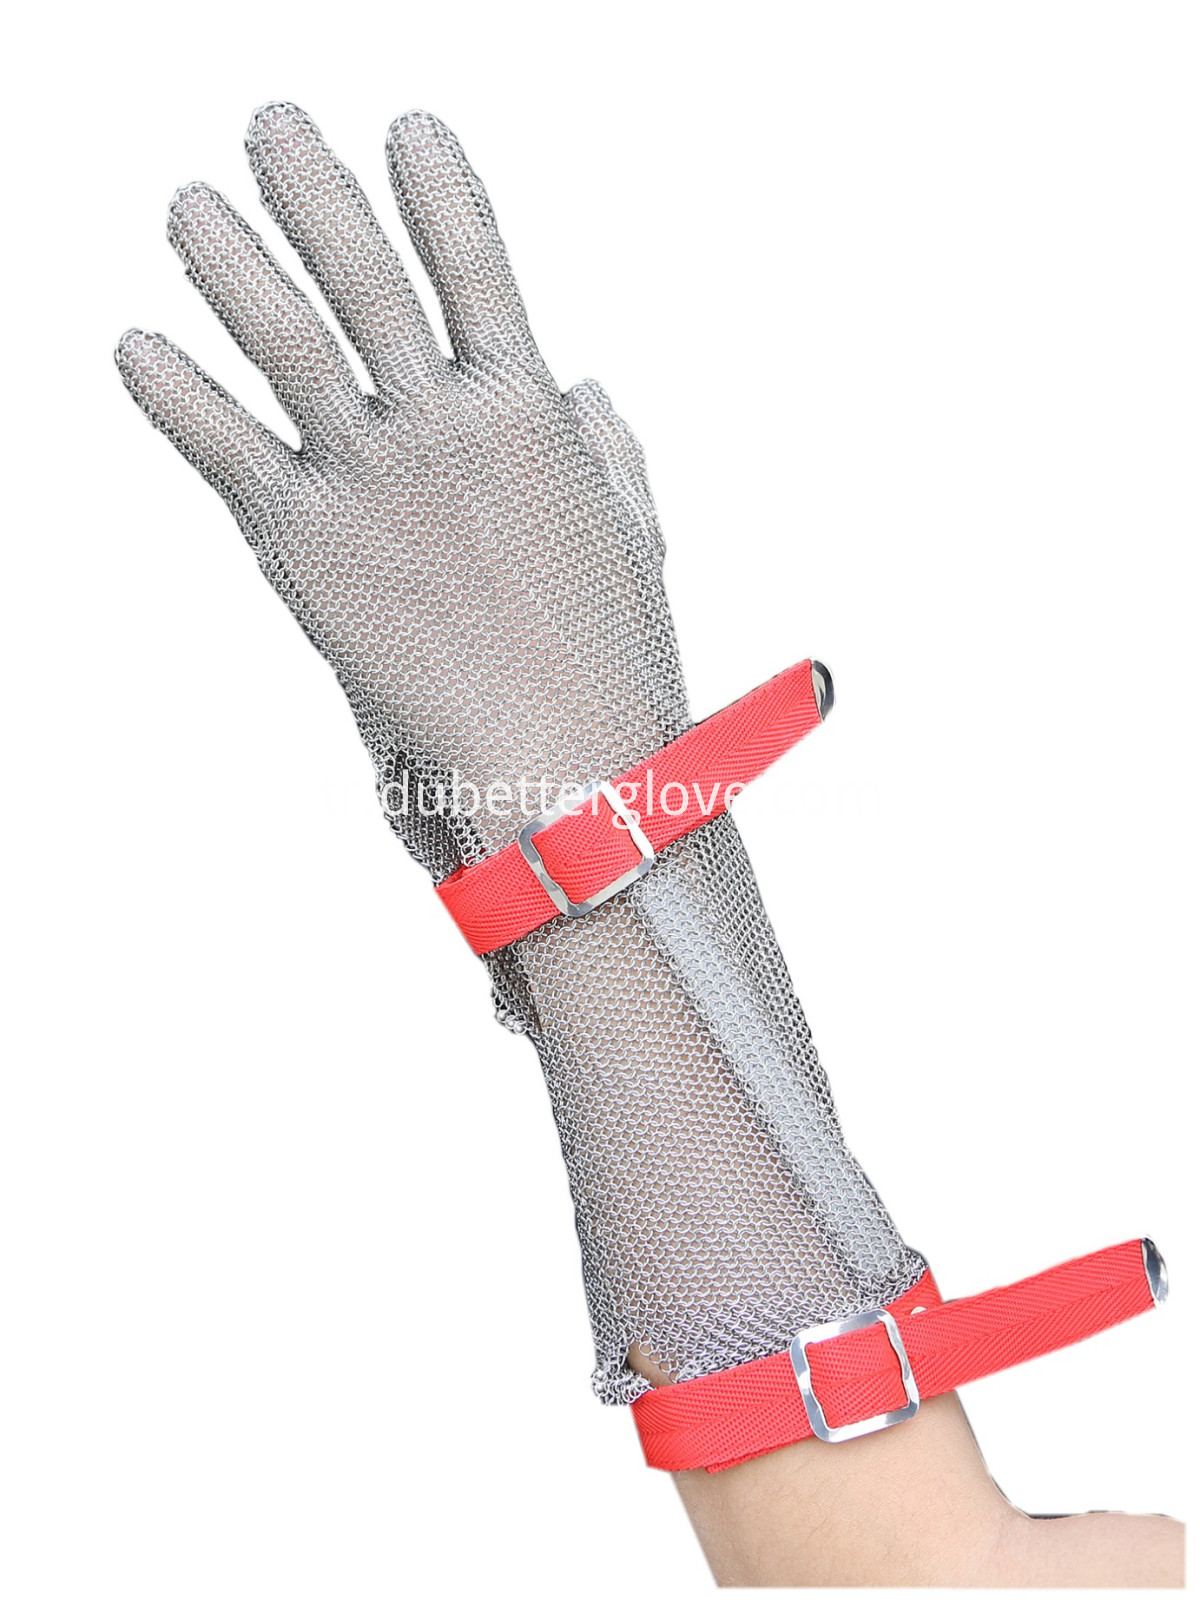 Dubetter steel mesh glove with long cuff